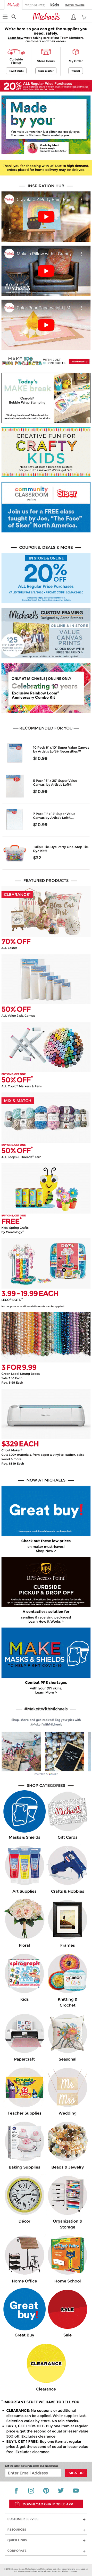 MichaelsStores Coupon